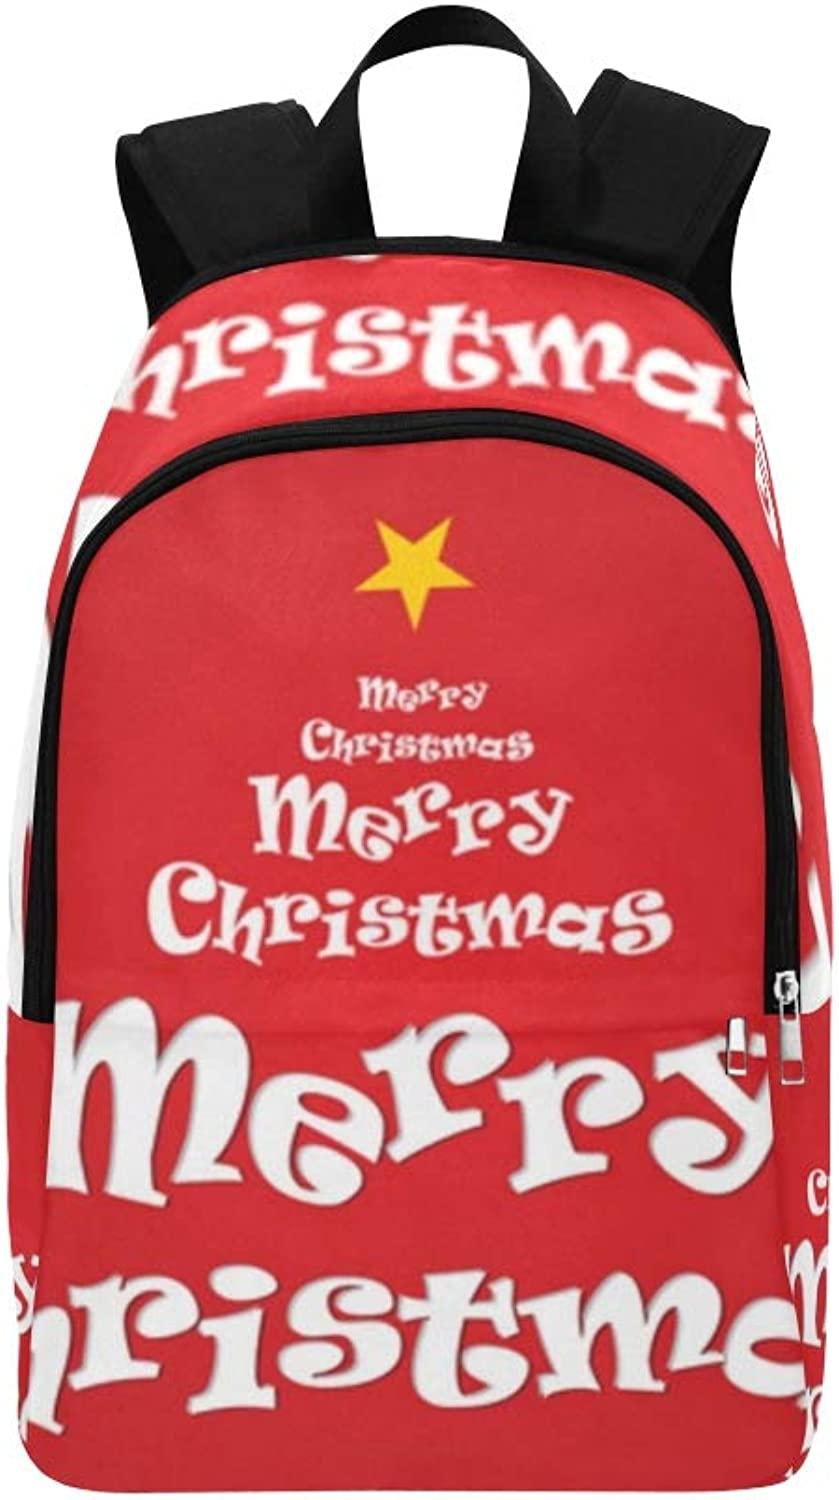 Text Daypack Backpack College Christmas Travel For School Casual Bag y0m8OvwNn